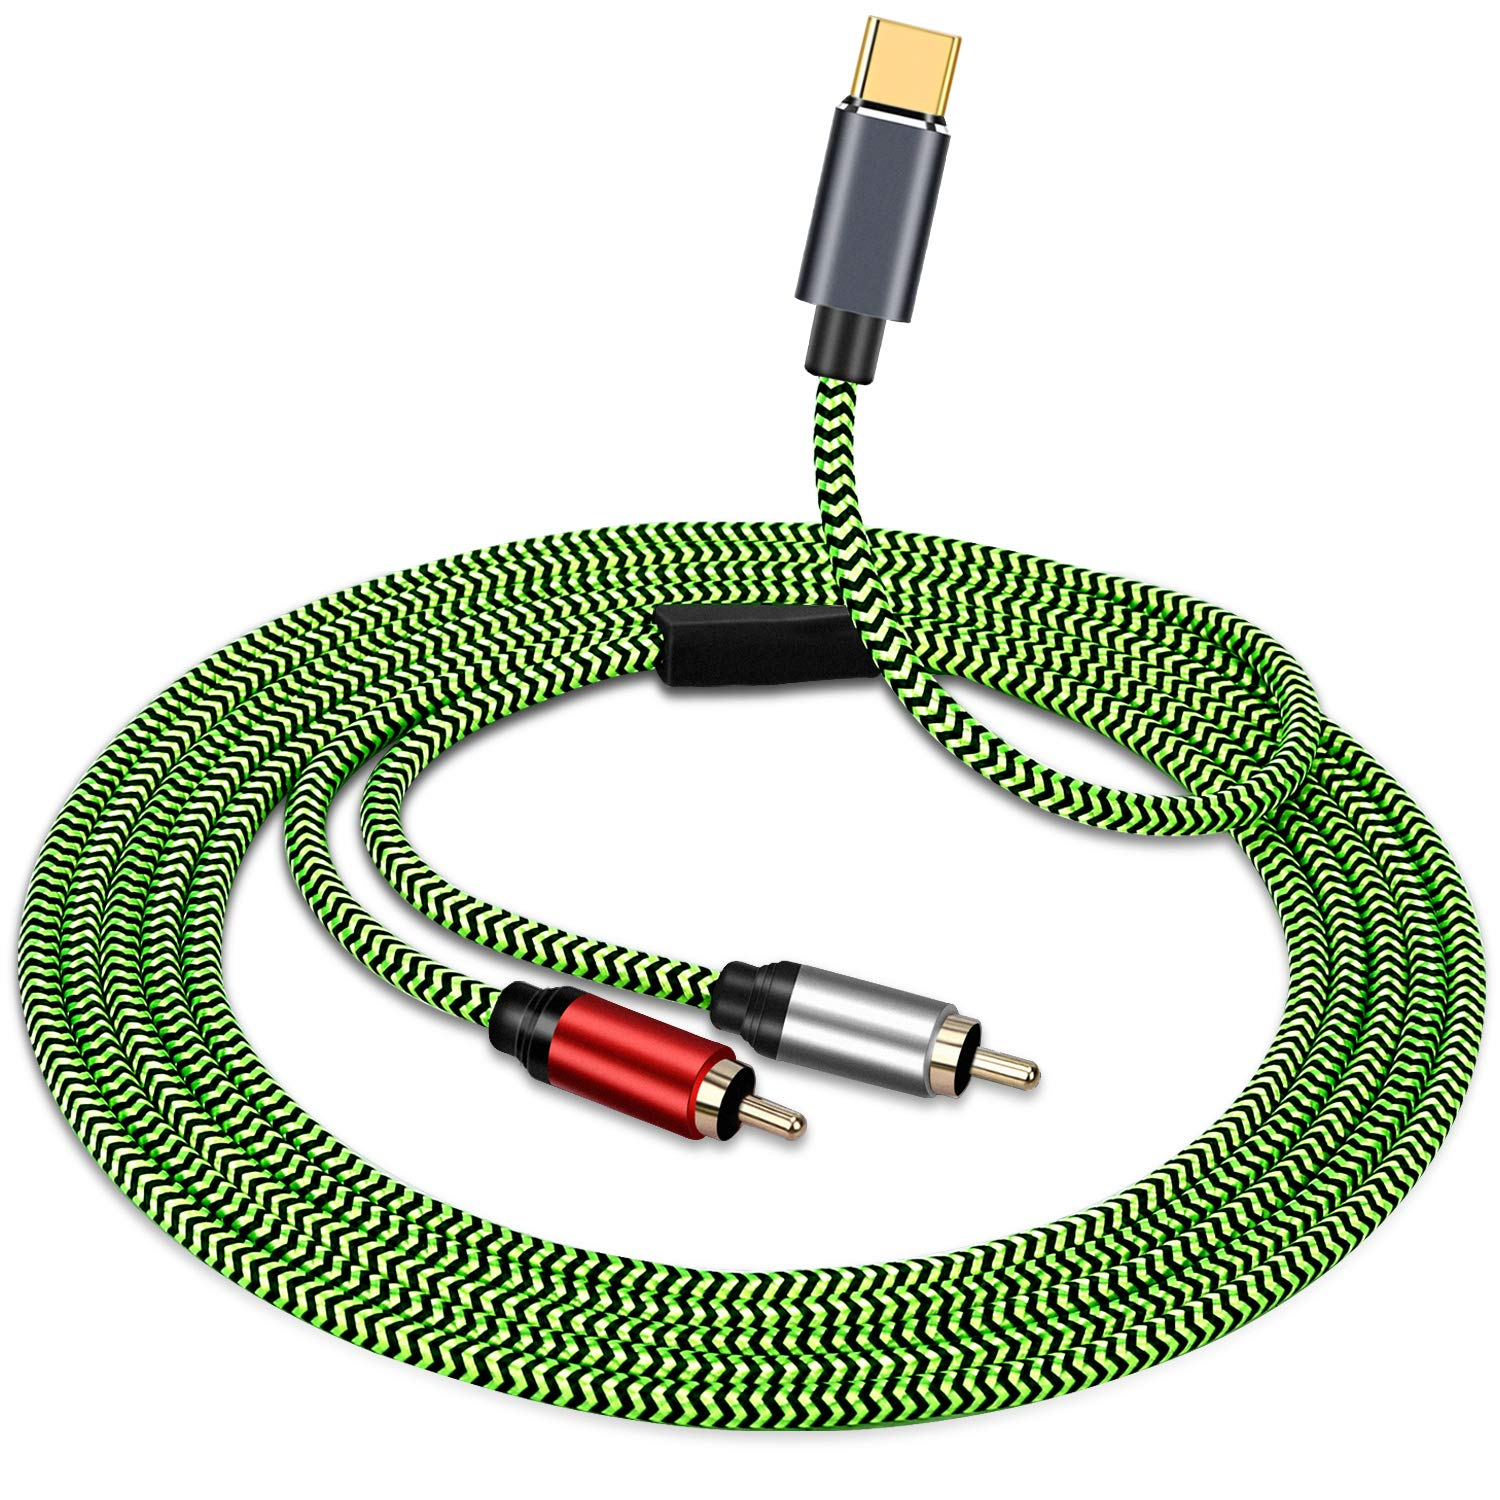 PPTVC USB Type C to 2 RCA Audio Cable,Type-C RCA Cable 6ft, 2rca Jack USB-C Audio Line for Xiaomi,LG,Home Theater Amplifier,DVD, TV Speaker